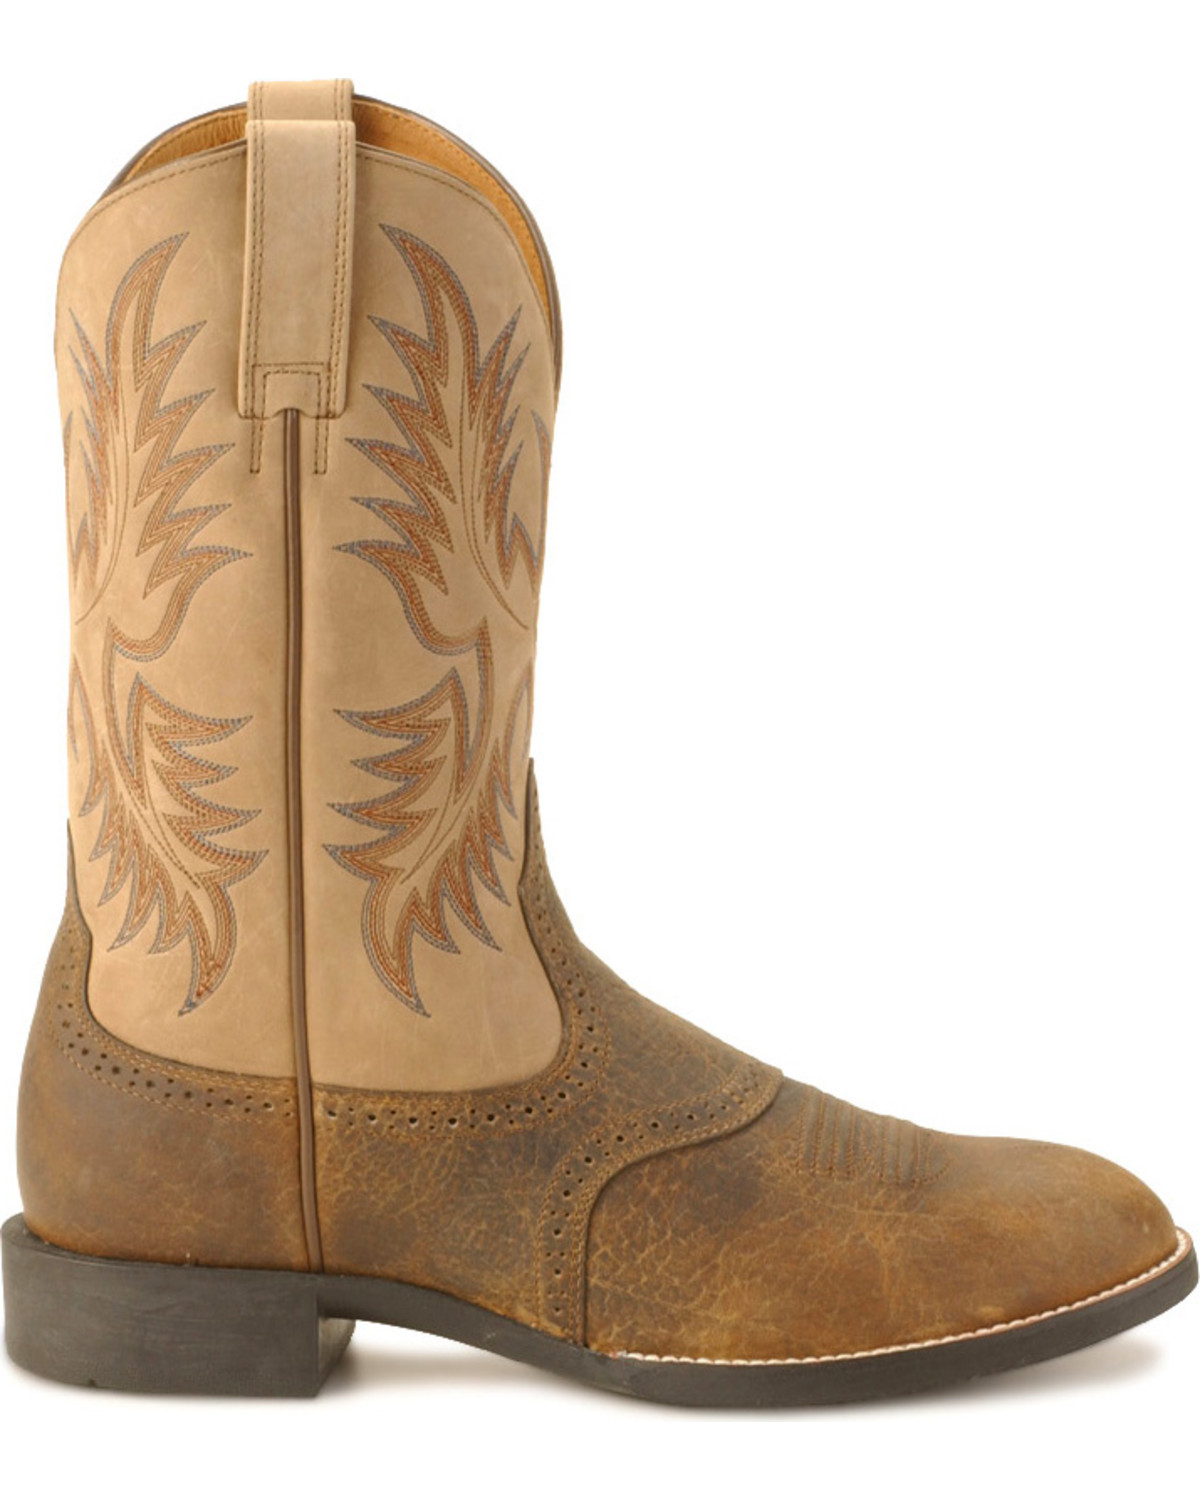 Shop for Men's Western Boots at perawan-tante.tk Eligible for free shipping and free returns.